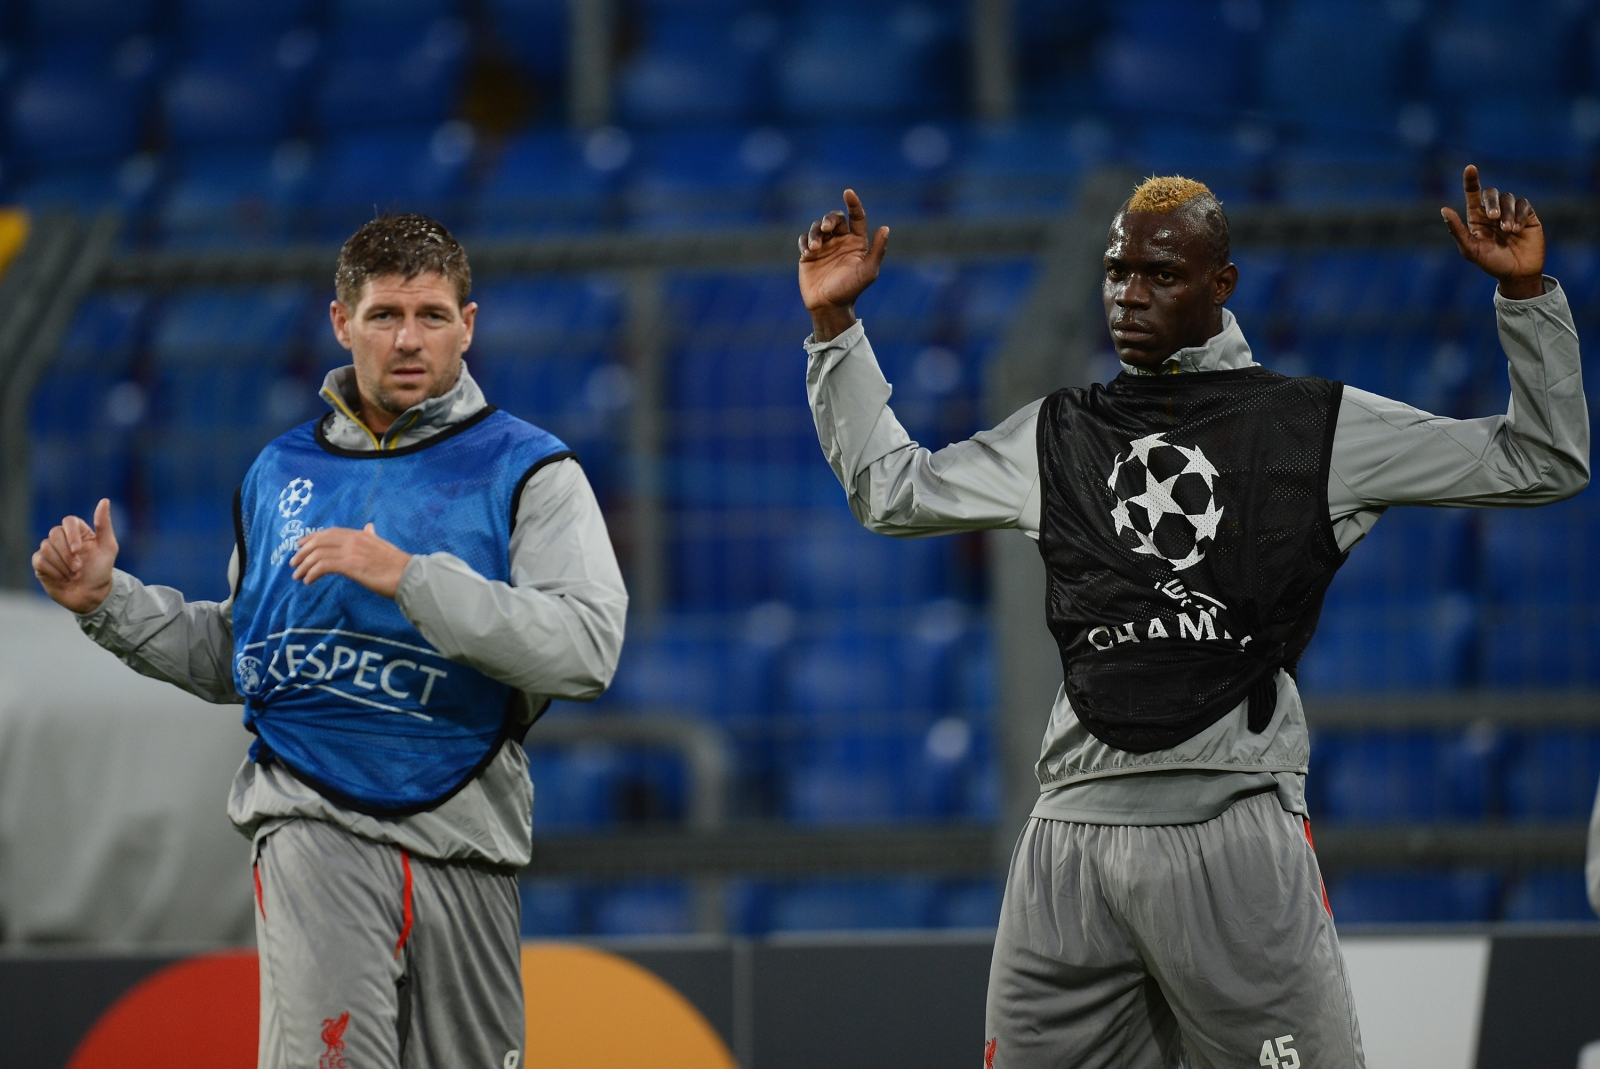 Balotelli and Gerrard